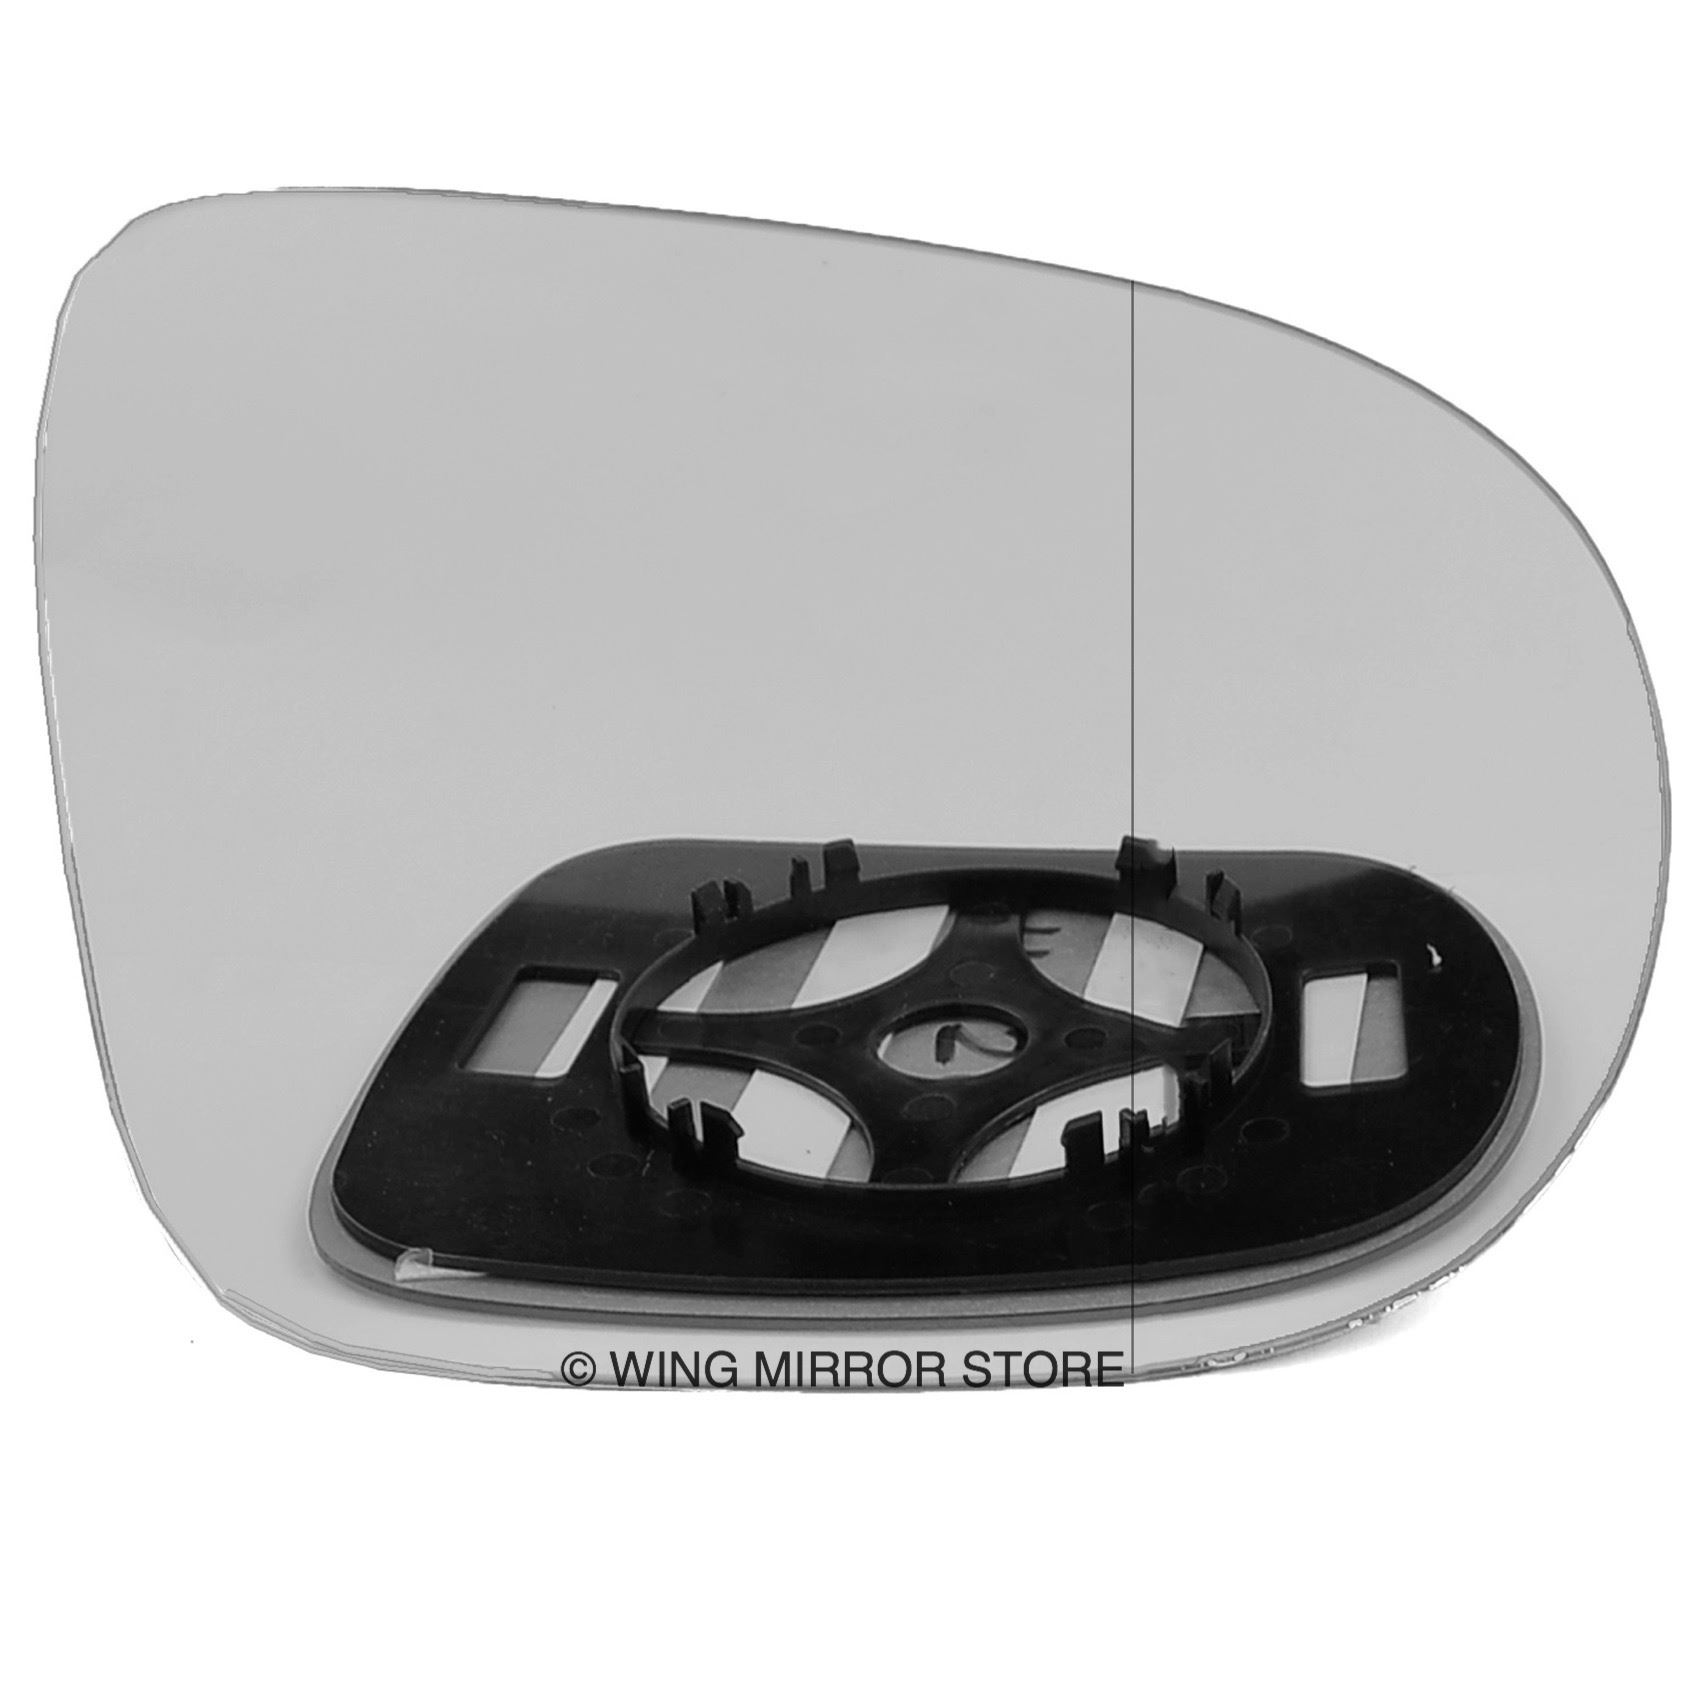 RIGHT DRIVER SIDE MIRROR GLASS FOR RENAULT CLIO X98 2014 onward